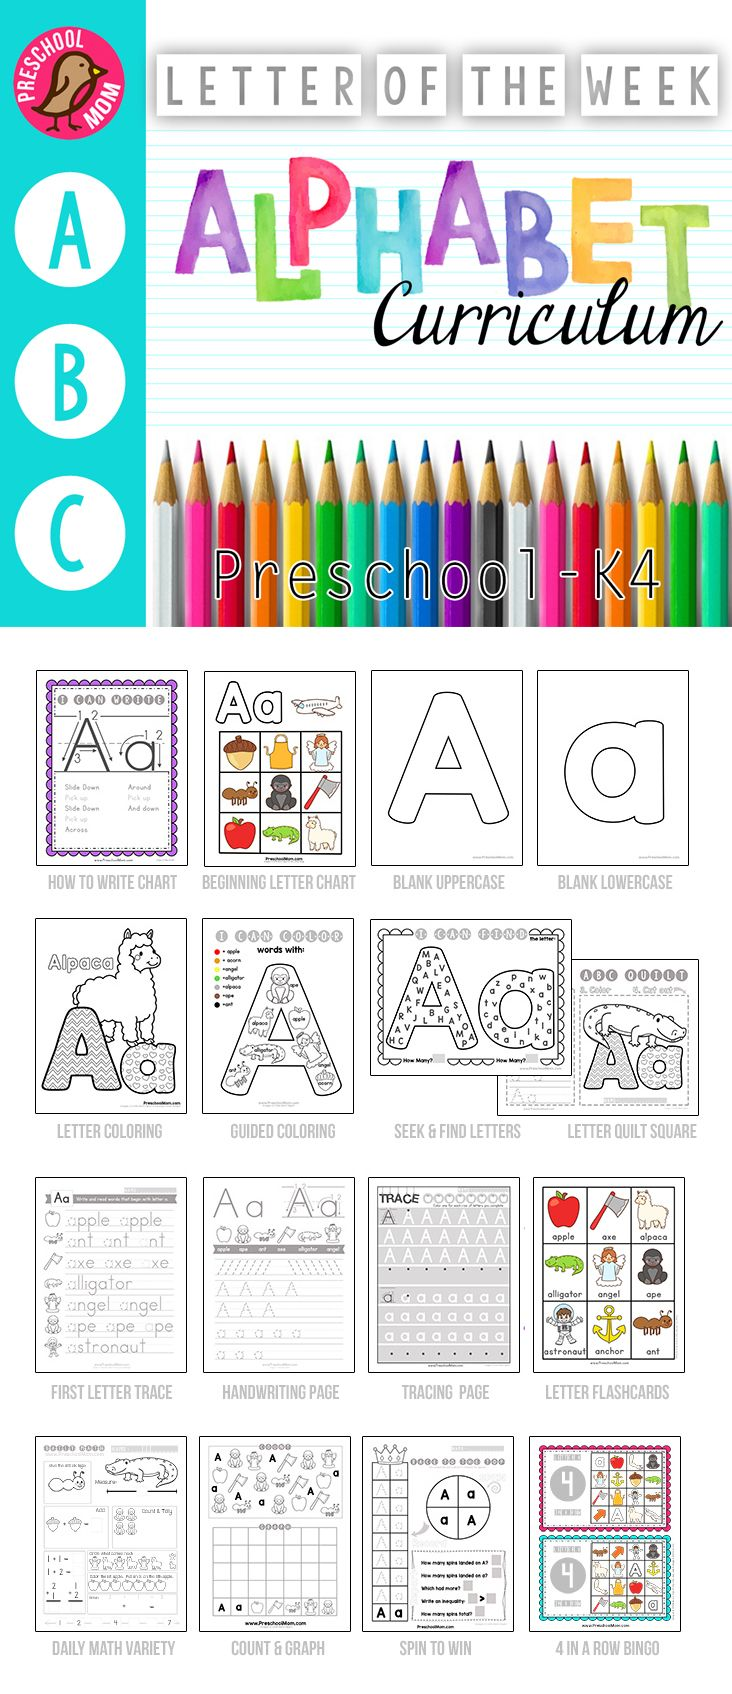 650+ Page Alphabet Curriculum.    No Prep Letter of the Week Preschool and K4 Alphabet Binder.  Worksheets, Games, Math and more for 3 or 4 day a week schedule.